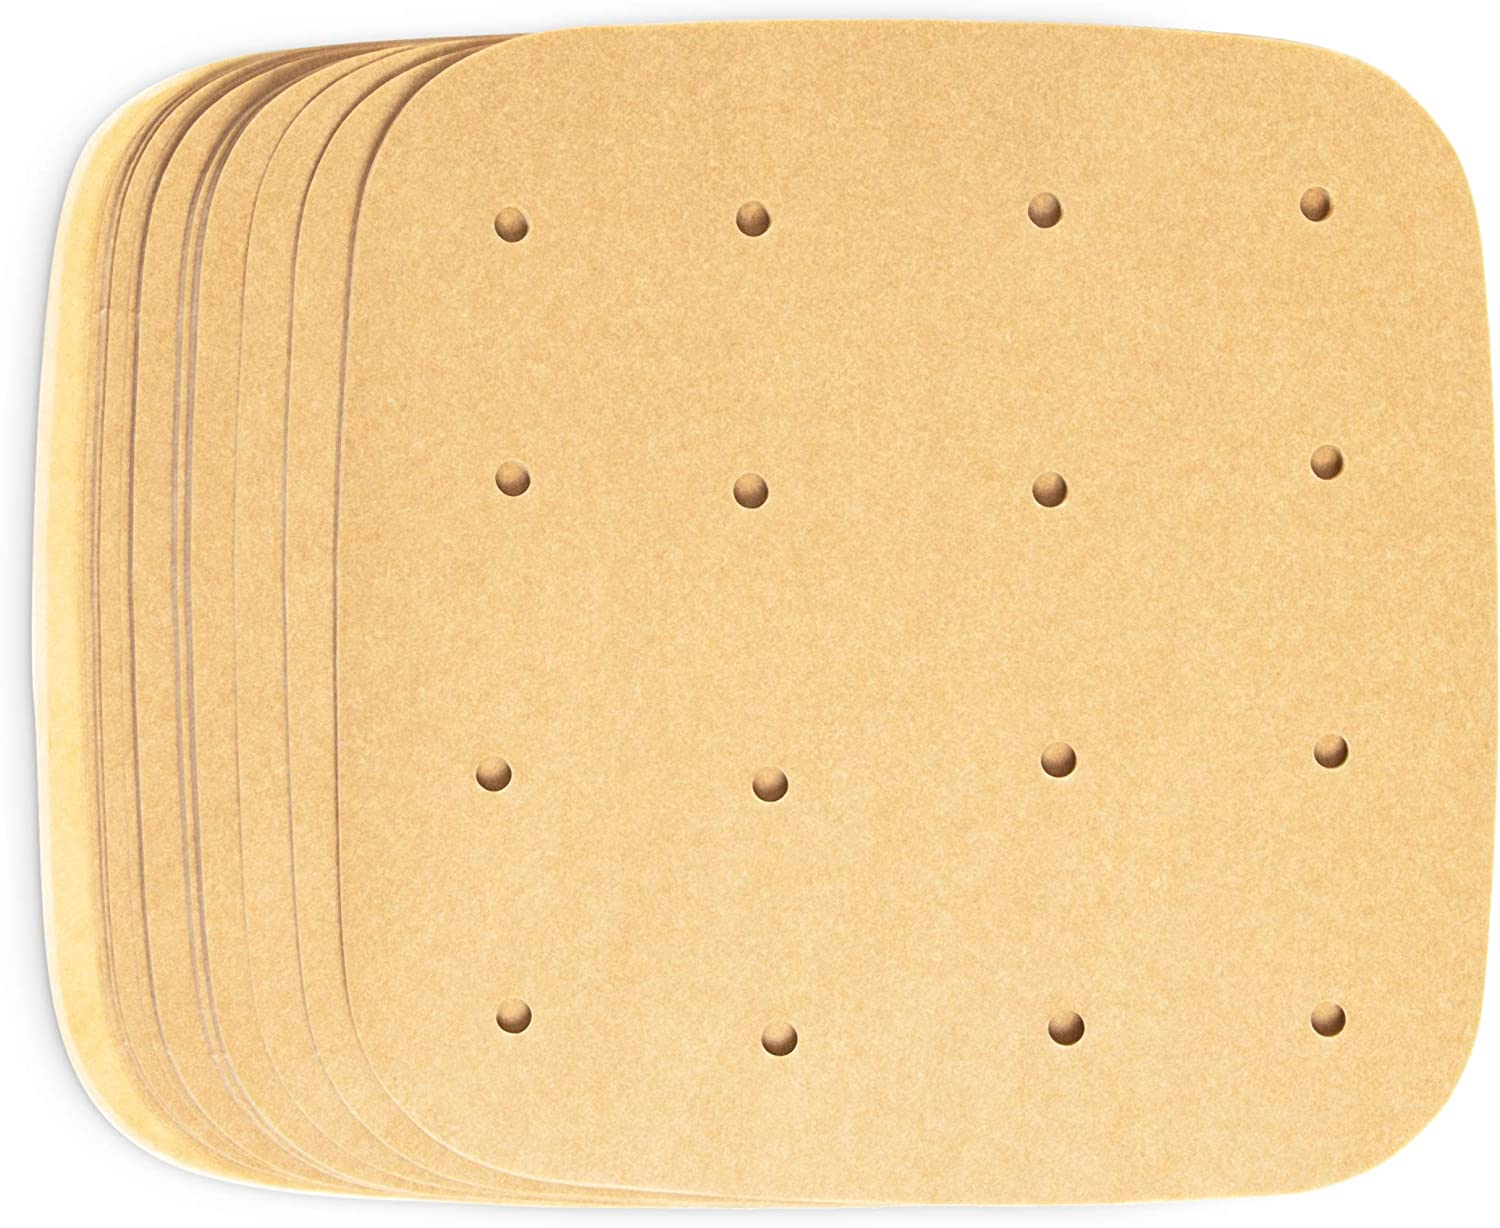 Air Fryer Liners, Unbleached Parchment Paper (6.5 x 6.5 In, 200 Pack)